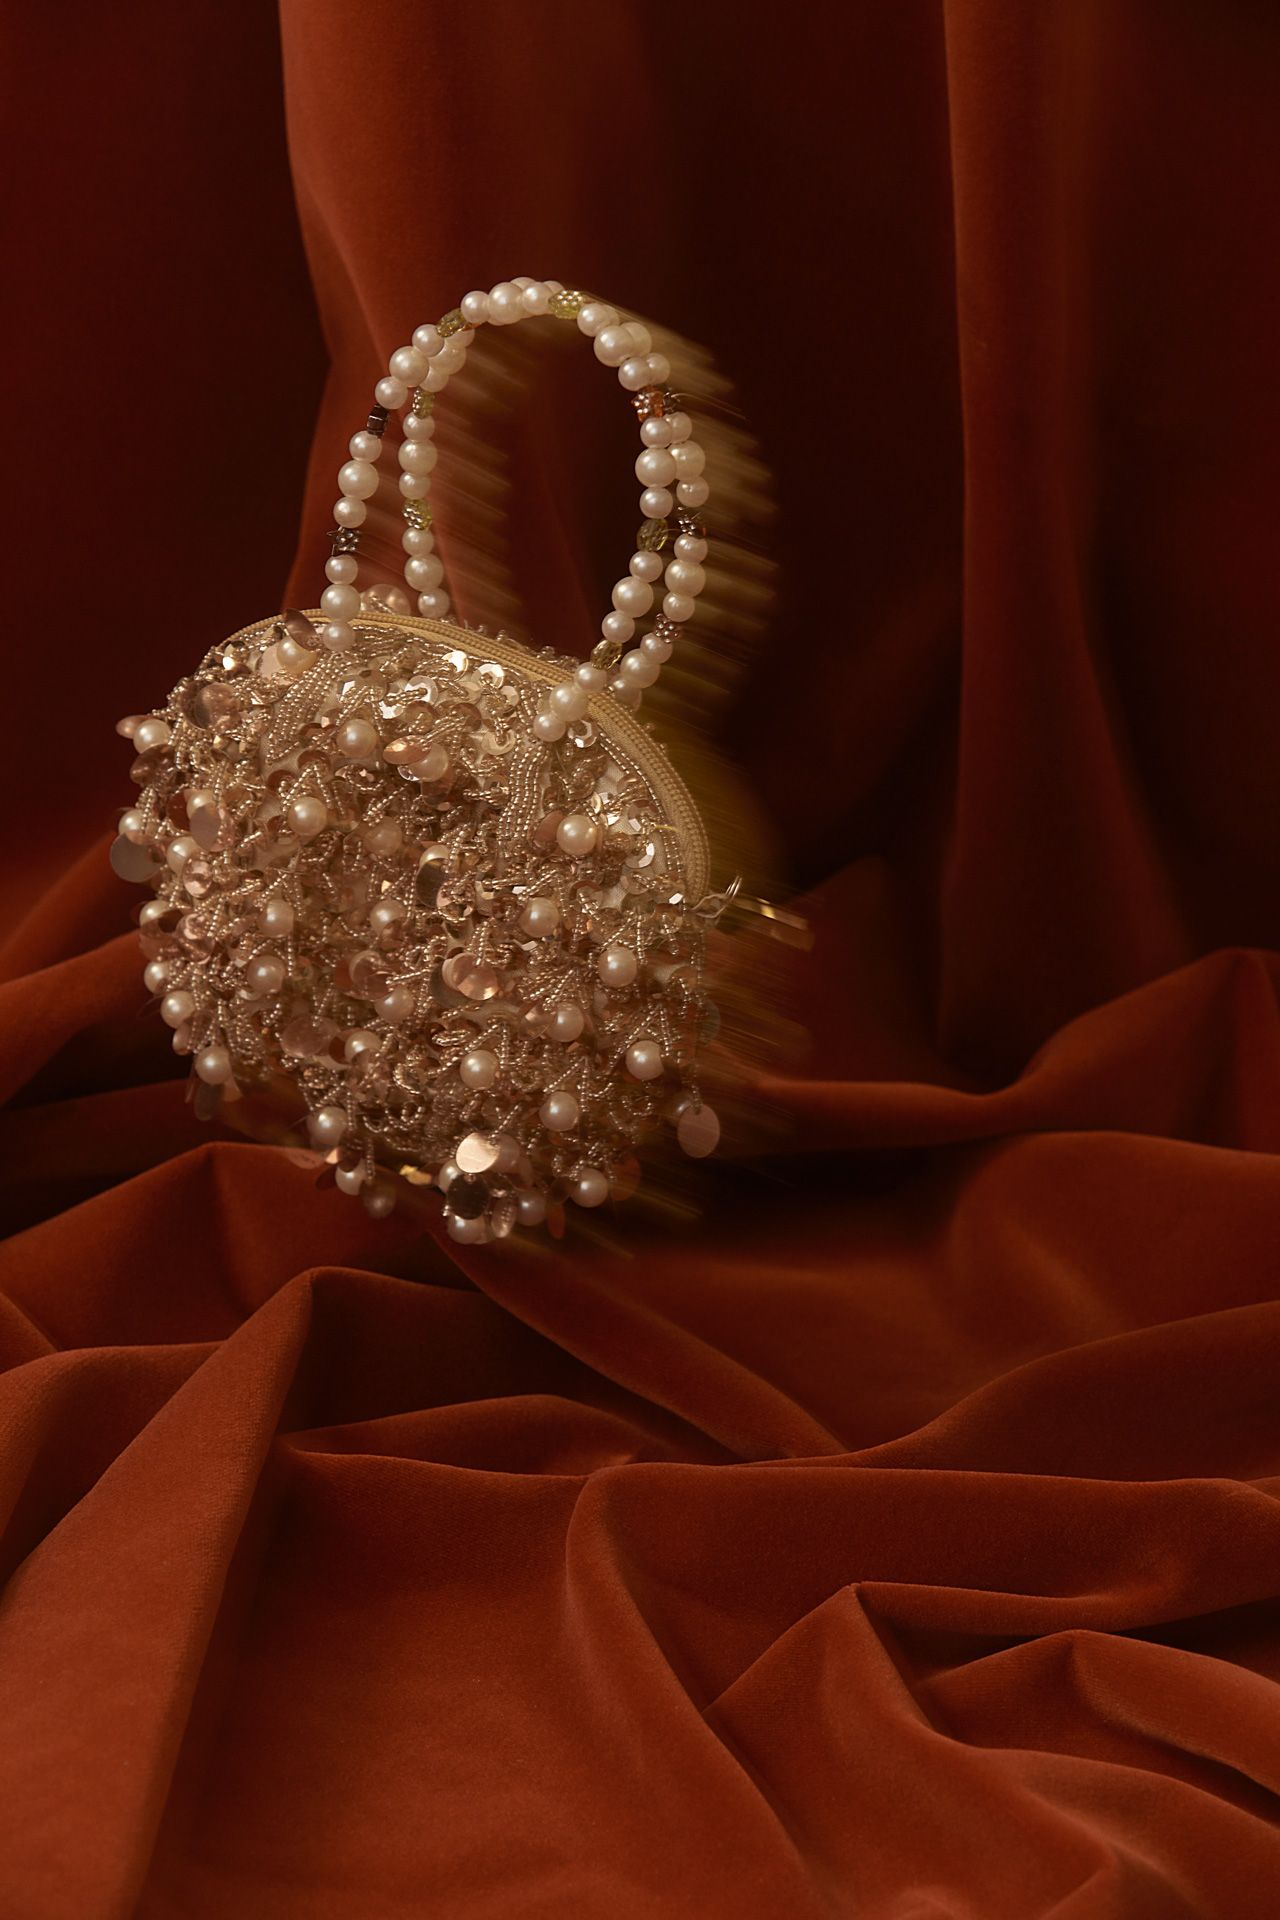 purse made out of beads and pearls on red suede fabric photographed by Kelly Jacob for LEV